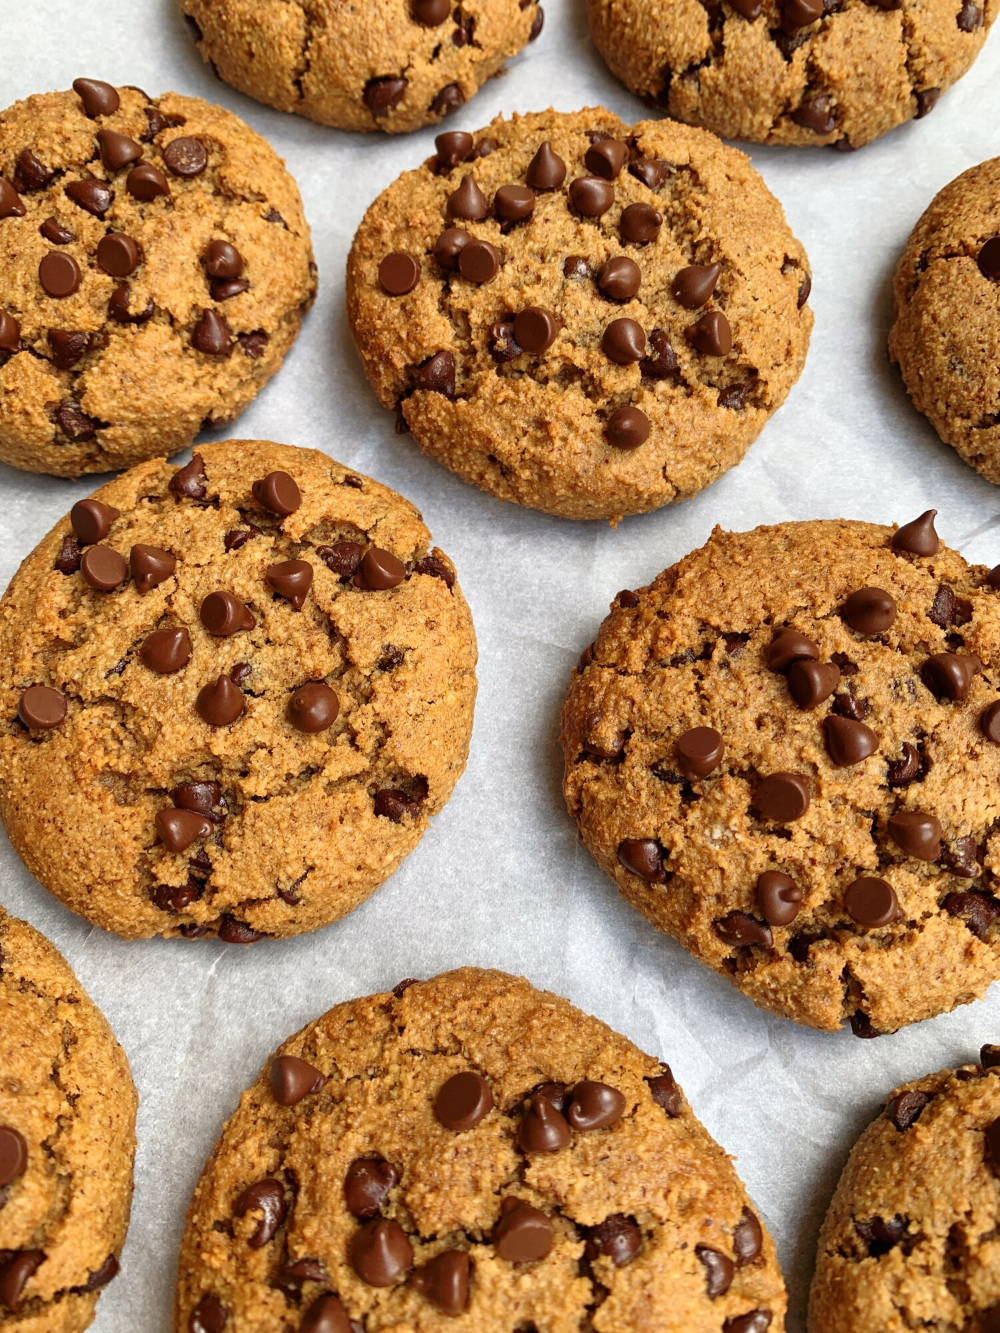 Healthy Chocolate Chip Cookies Chen S Plate Healthy Chocolate Chip Cookies Healthy Baking Desserts Healthy Chocolate